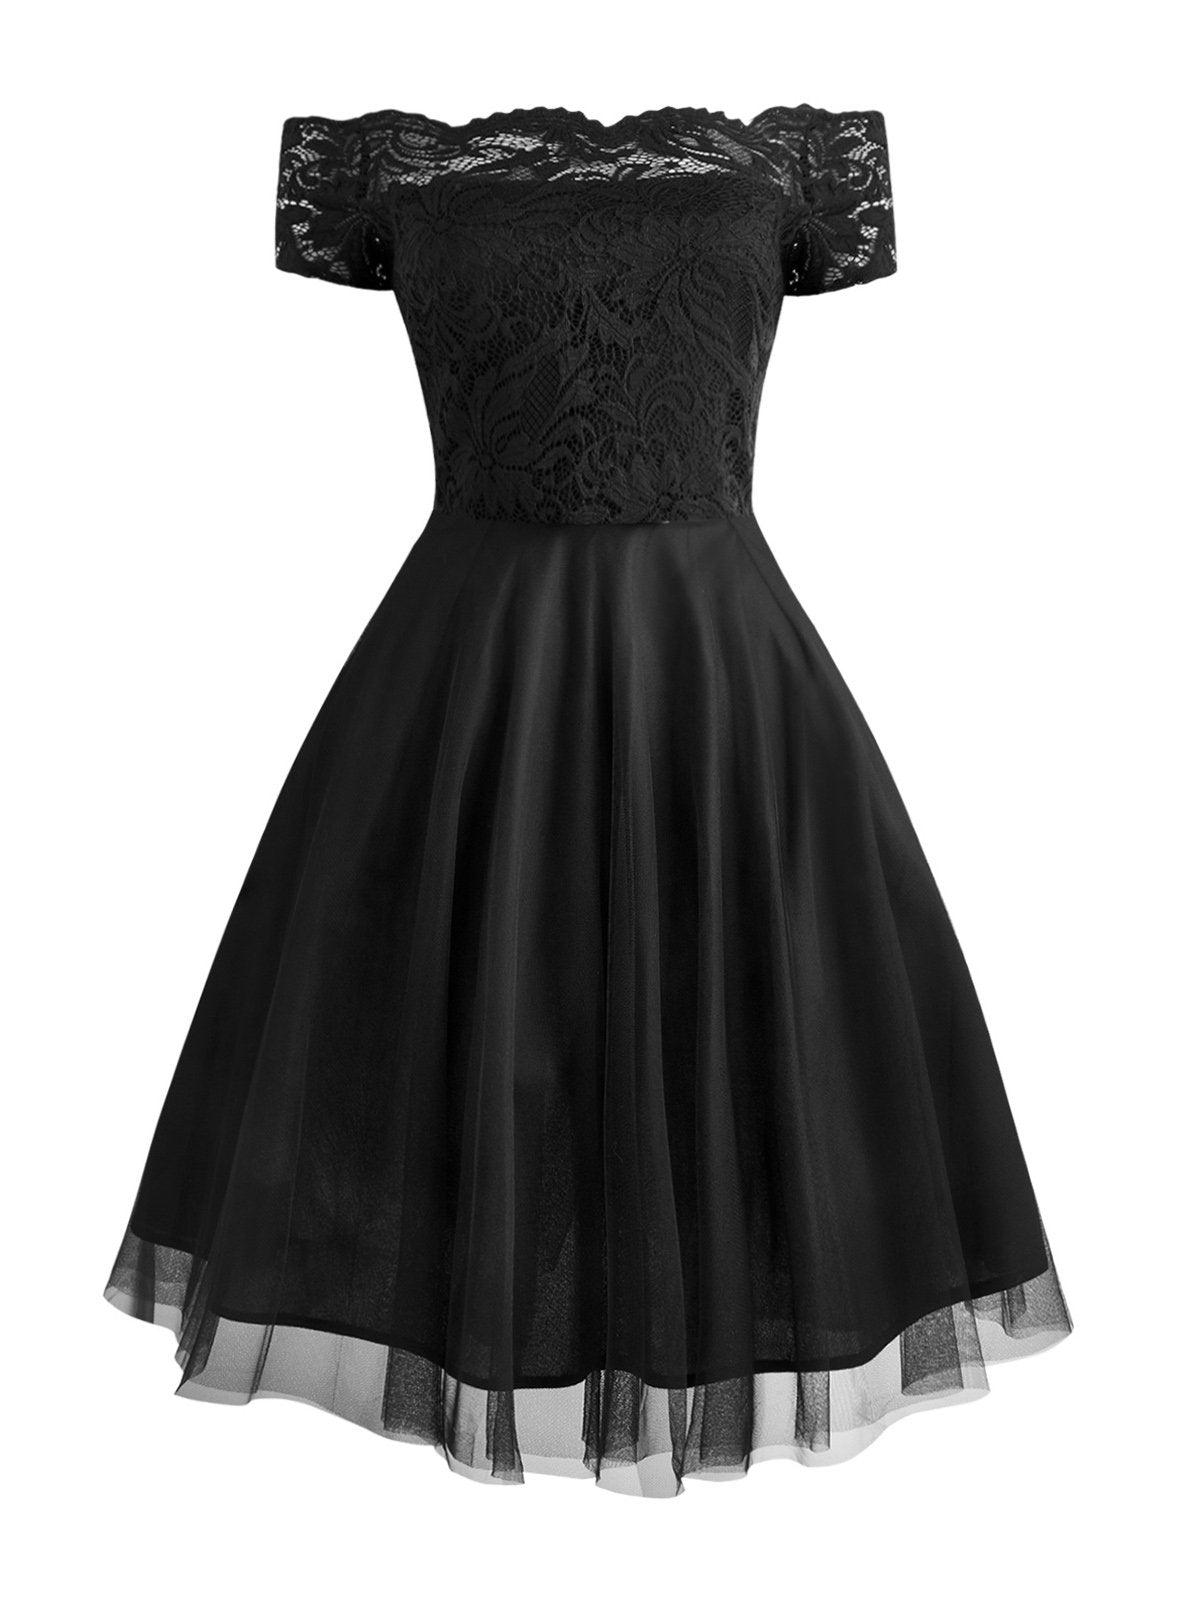 1950s Off Shoulder Lace Swing Dress